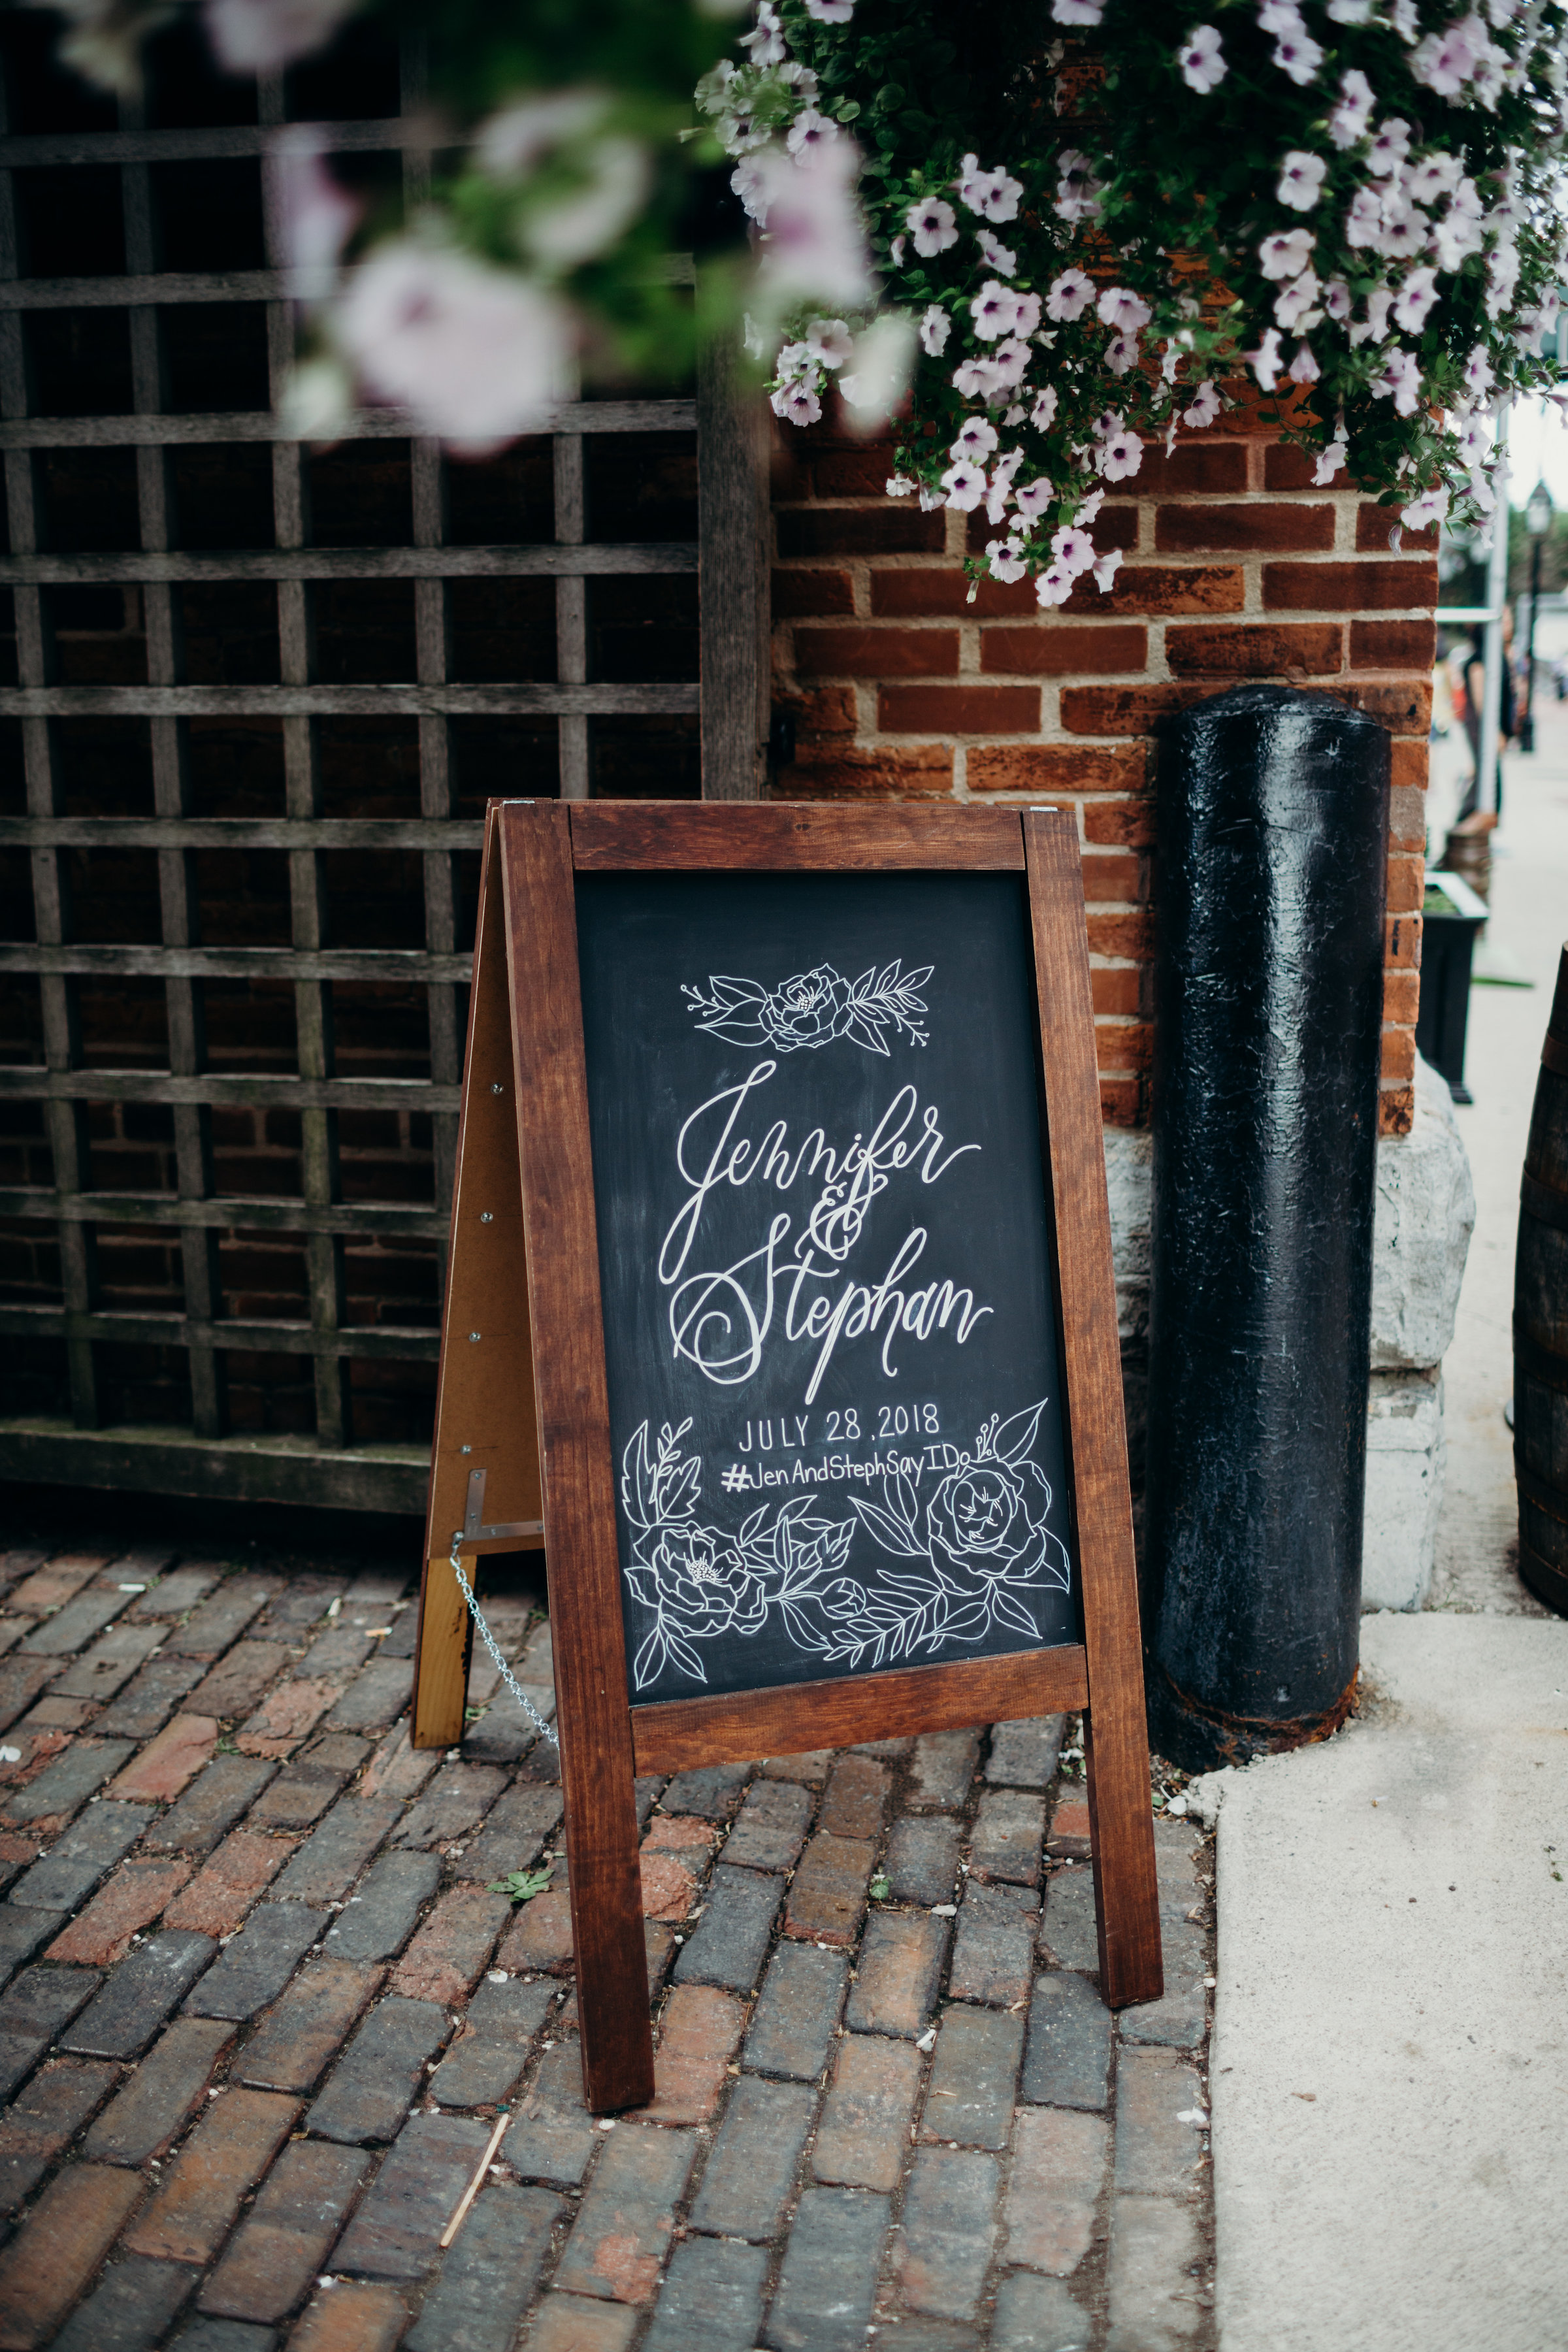 event signage - Event signage sets the tone with your venue and adds a personal touch for your guests and participants.Large signage: Welcome signs, statement signage, decorative piecesSmall signage: Reception table, menus, bar menus, card boxes, table signage